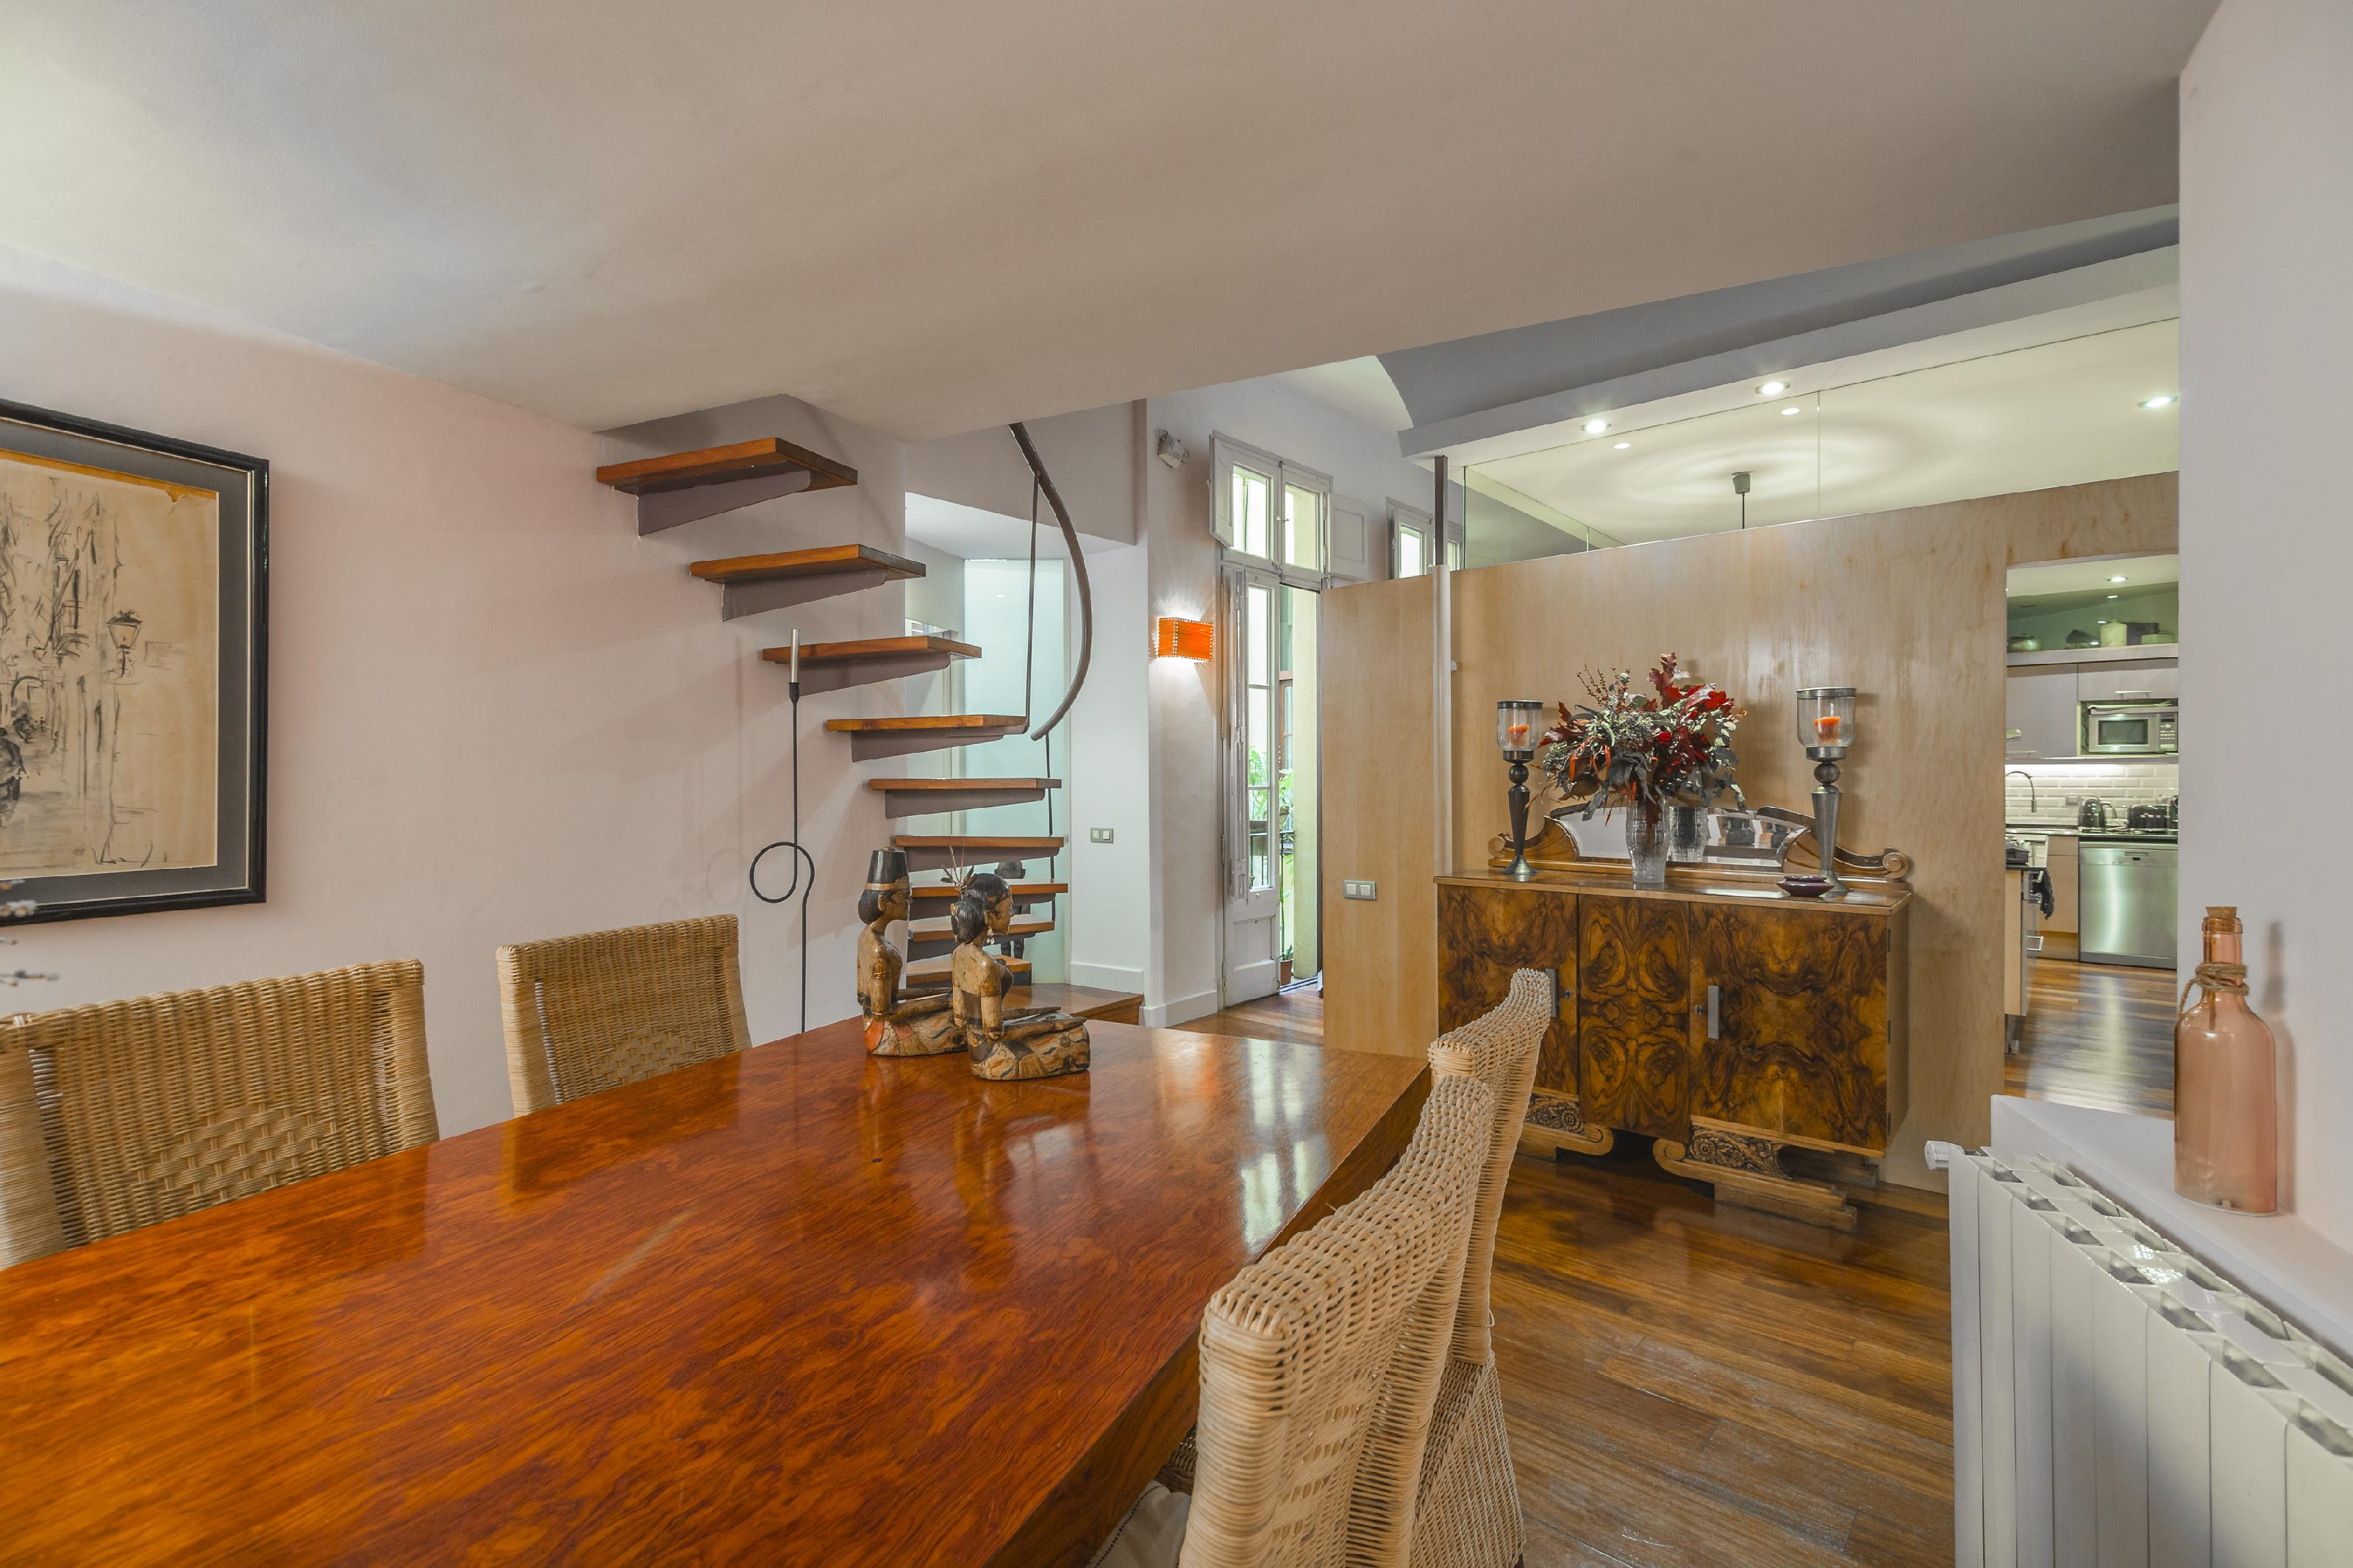 241111 Flat for sale in Ciutat Vella, Barri Gótic 15